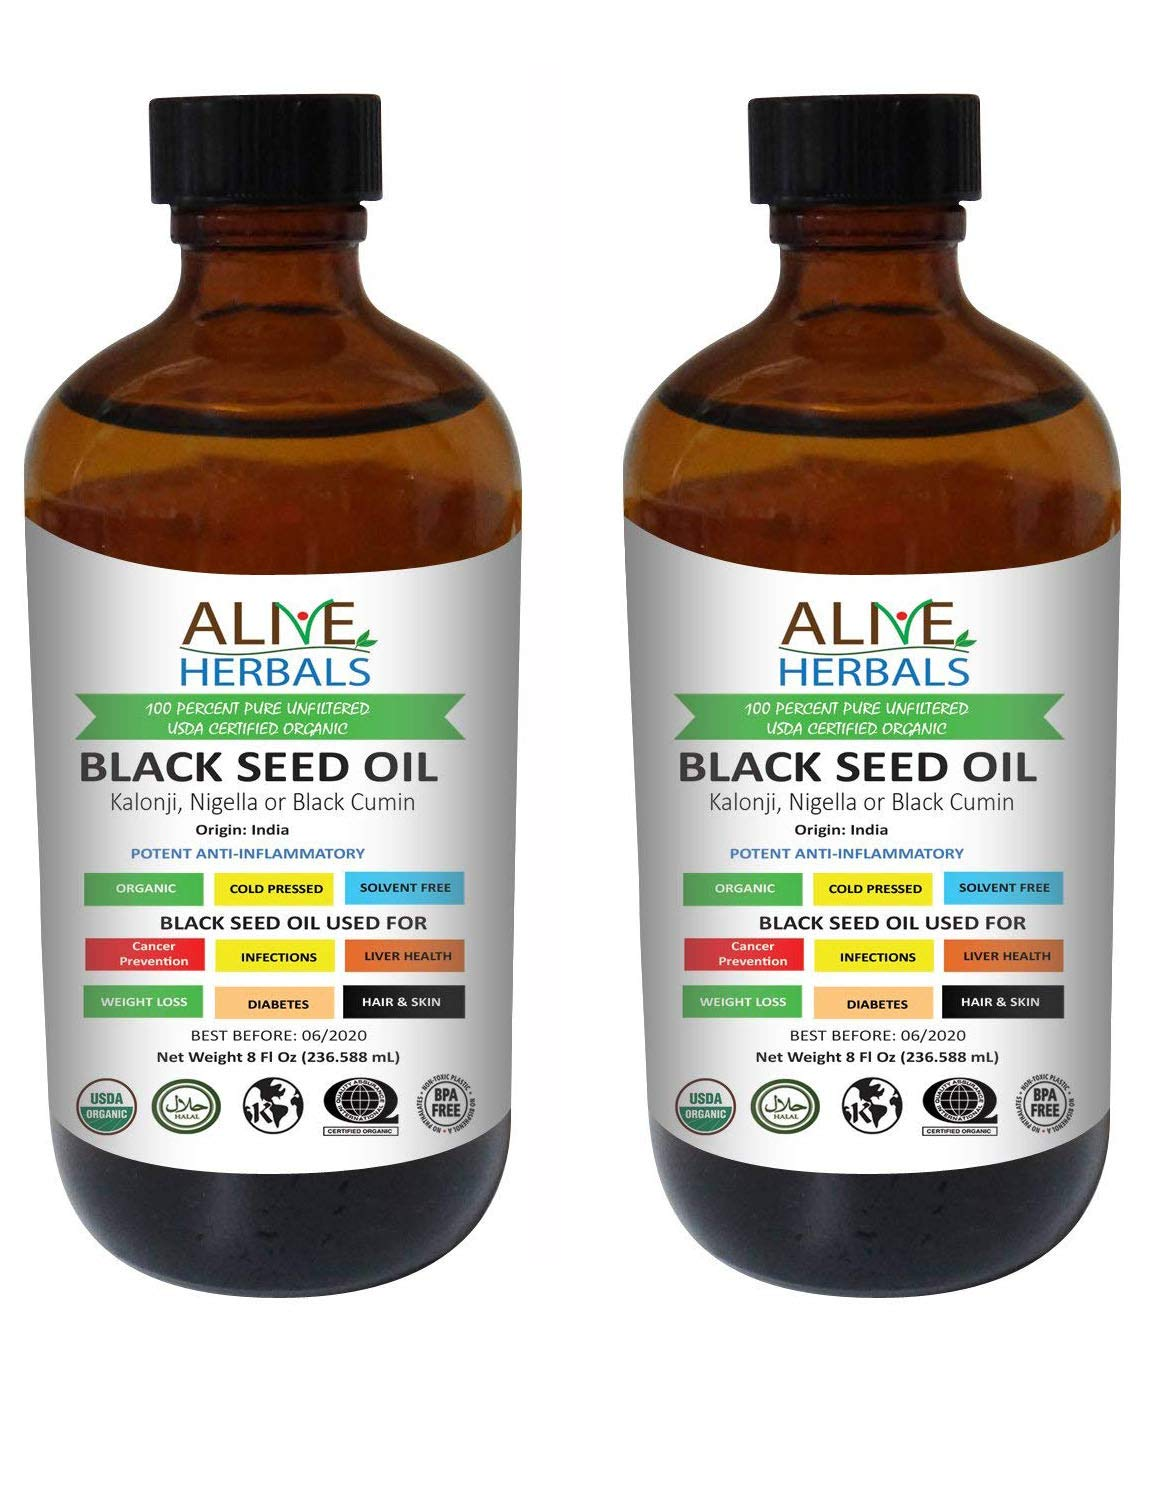 Alive Herbals Black Seed Oil Organic Cold Pressed - 100% Raw Unfiltered, Vegan & Non-GMO, No Preservatives & Artificial Color. Amber Glass (8 OZ Glass bottle Pack of 2)